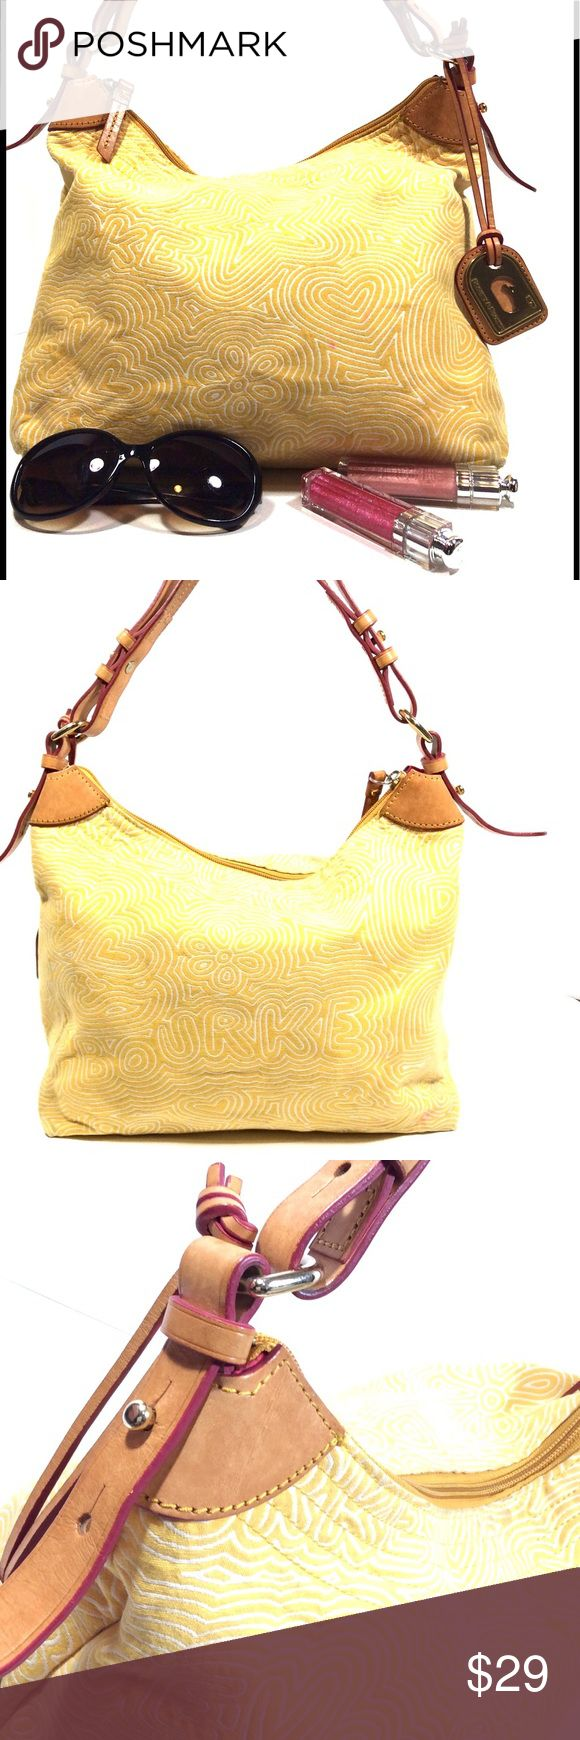 Dooney and Bourke Yellow Canvas Shoulder Bag Adorable colorful bag. White design on yellow canvas back drop. Bag has been used and as such has spots were its slightly soiled. Has a nice patina on the leather. Eye catching hot pink interior with loads of storage space. Corners show wear in the form of being slightly dirty. Also has some pink spots on the outside of the bag (see pic). Still a beautiful bag with tons of potential. Size 13 1/2'' x 9 1/2'' with a strap drop of 9 1/2'' Dooney…